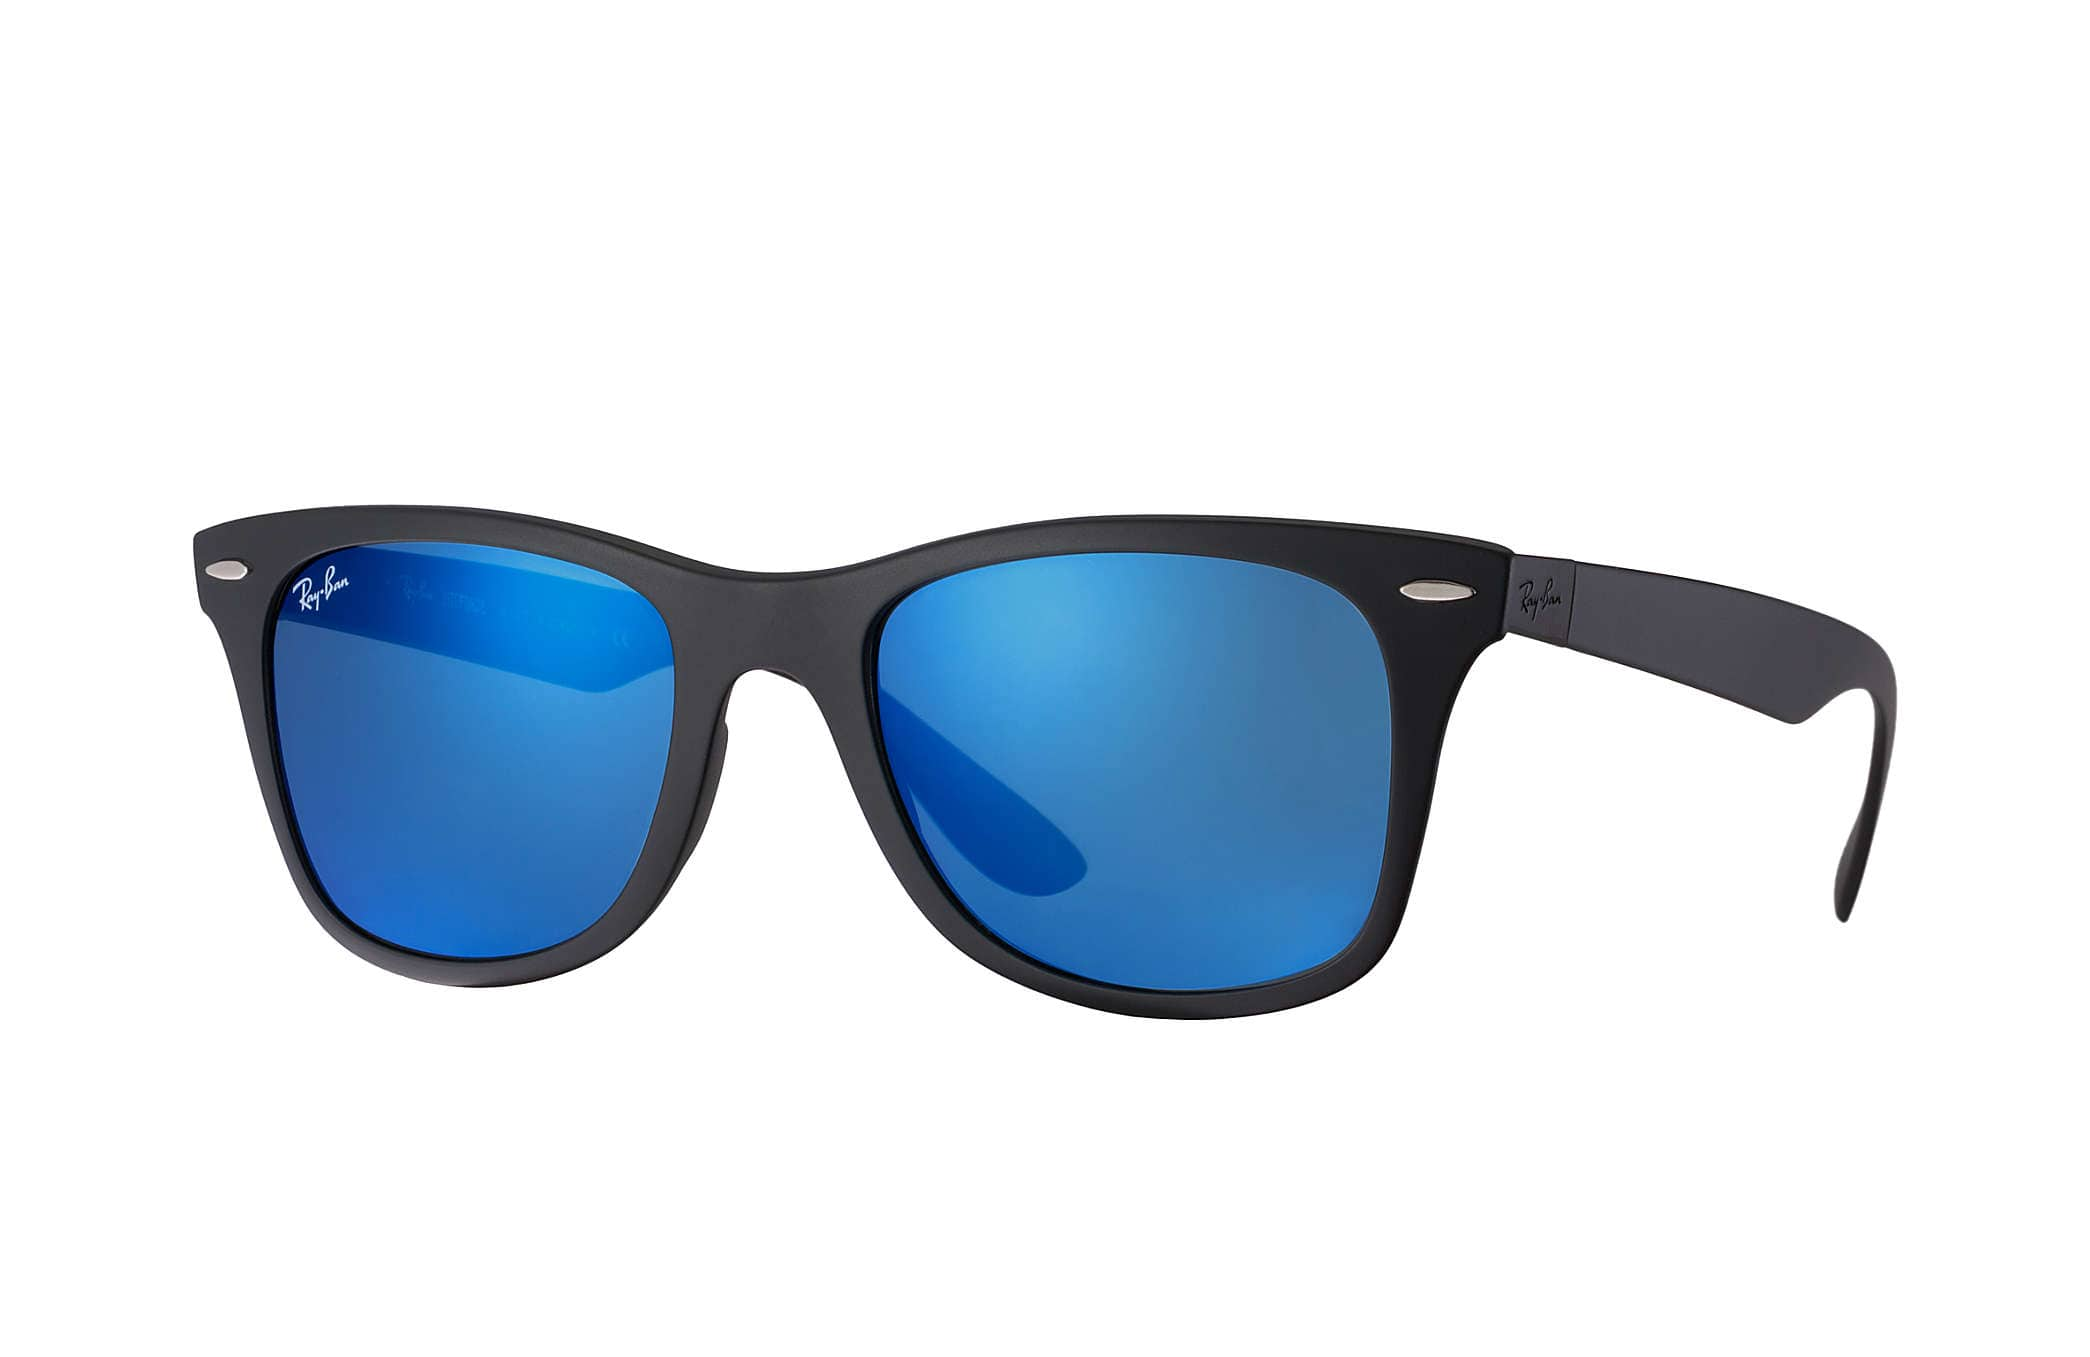 11a70605c48 Ray-Ban Sunglasses  Select Men s   Women s Styles - Slickdeals.net